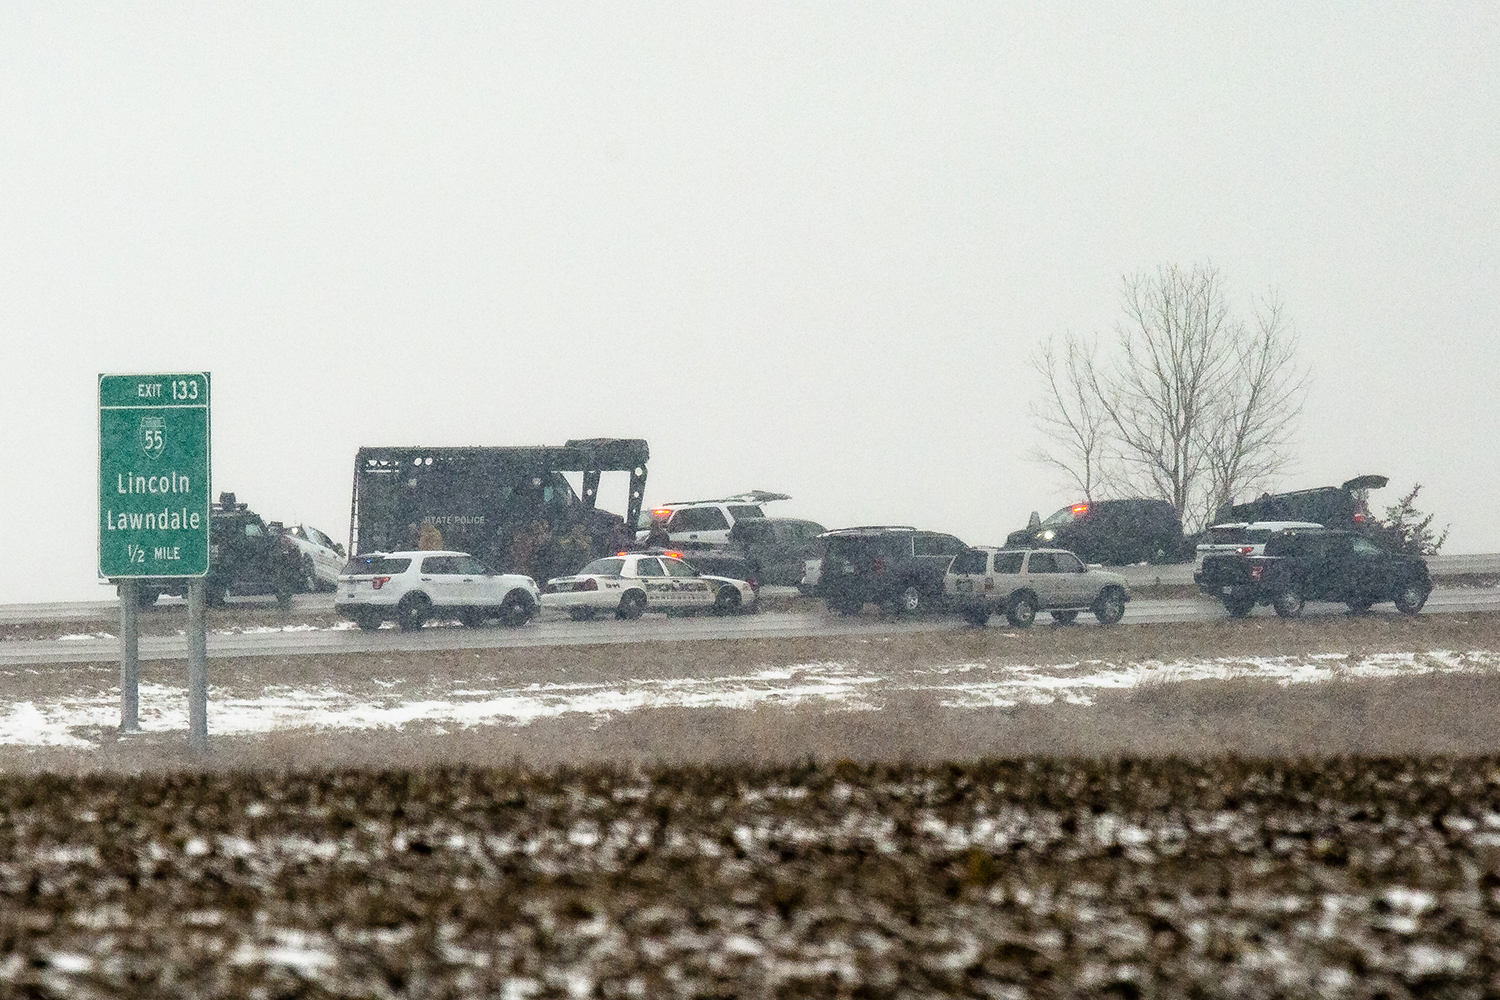 Illinois State Police and crisis negotiators are in a standoff with Floyd E. Brown, 39, of Springfield, on Interstate 55 near Lincoln, Ill. Thursday, March 7, 2019, after Brown allegedly shot a McHenry County sheriff's deputy attached to a U.S. Marshals Service task force in Rockford, then fled. His car was off the southbound lanes of the interstate and Brown was in and out of the car. [Rich Saal/The State Journal-Register]